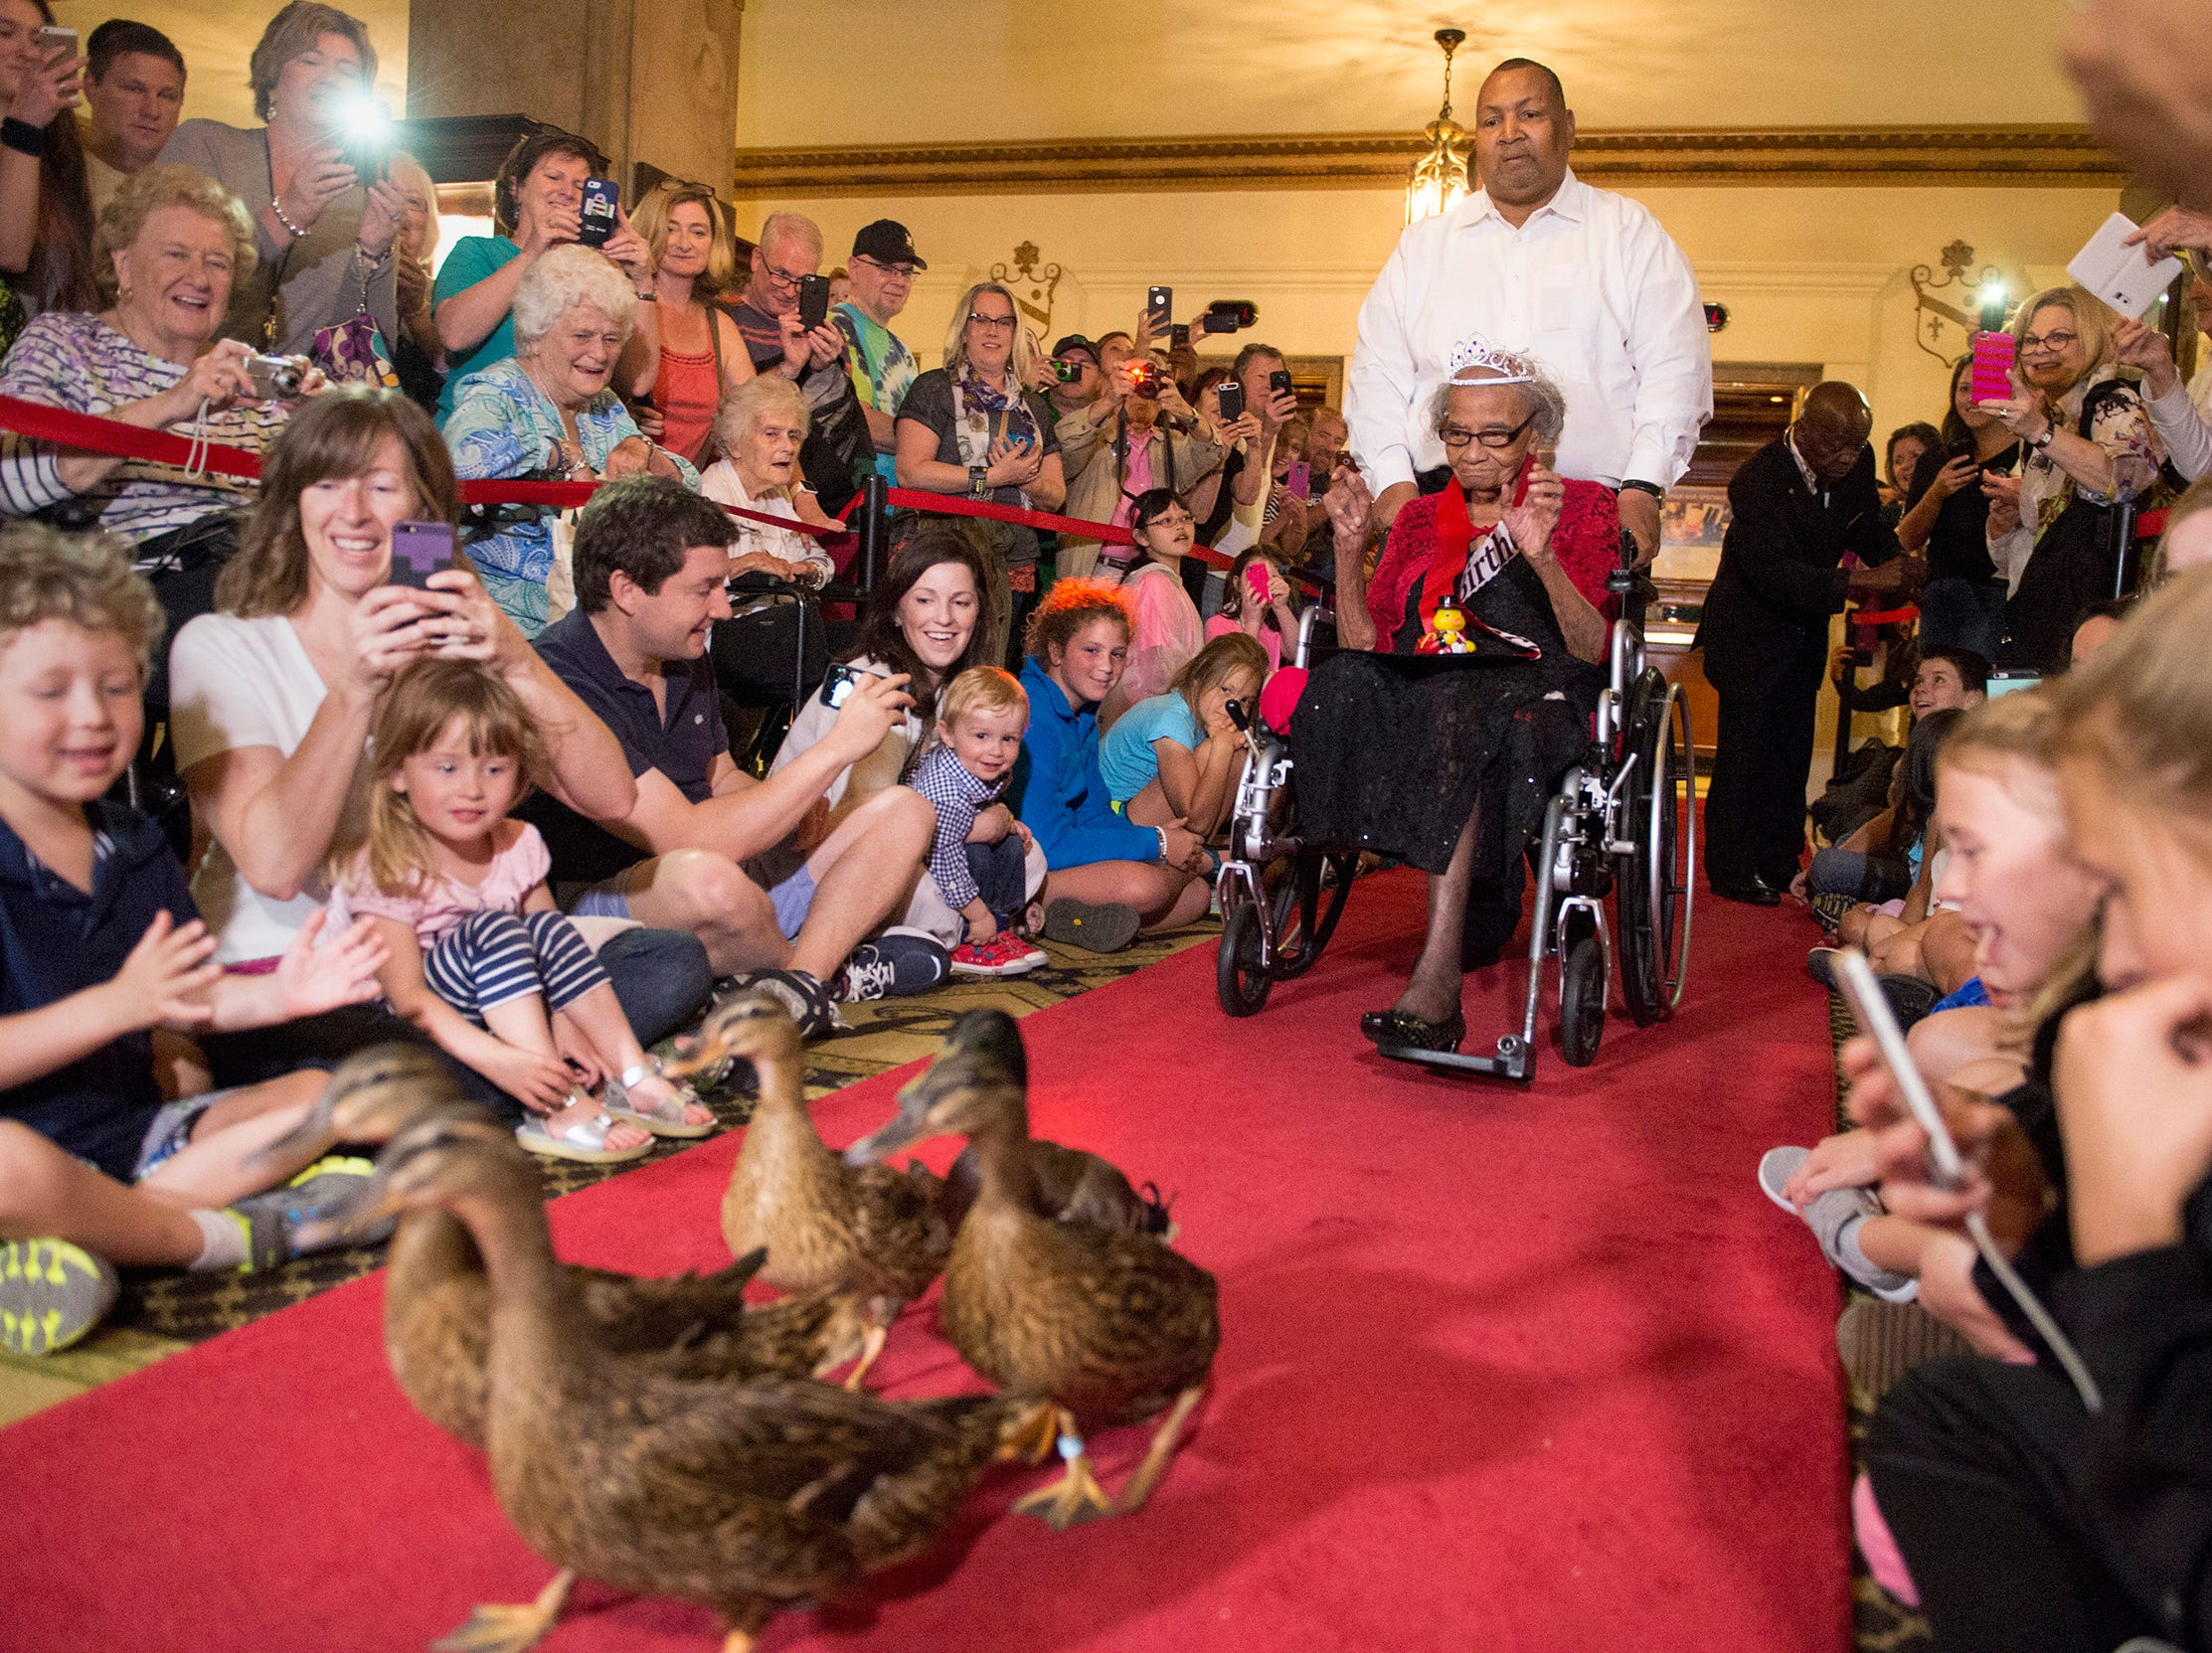 Pushed by her nephew Michael Davis, Dorothy Davis celebrates her 105th birthday by serving as honorary duckmaster at the Peabody Hotel on April 29, 2016.